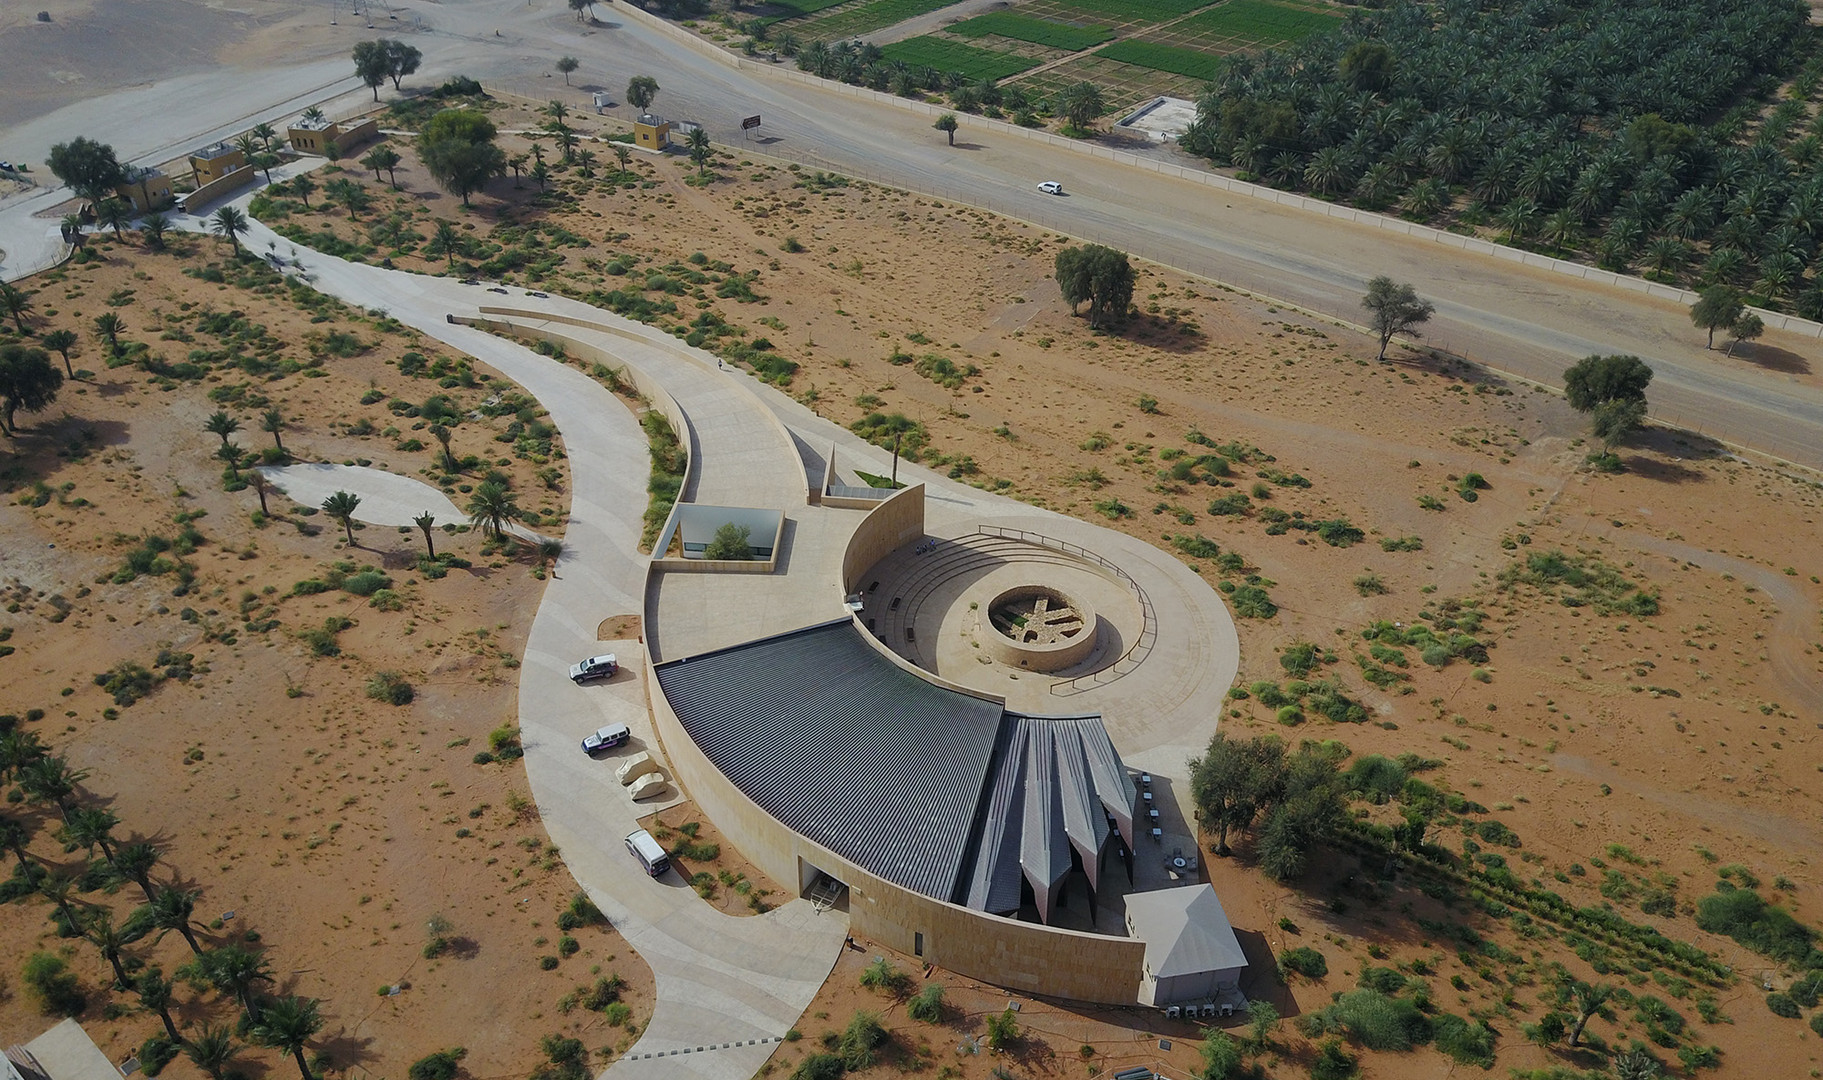 Mleiha Archaeological Centre; designed by Dabbagh Architects